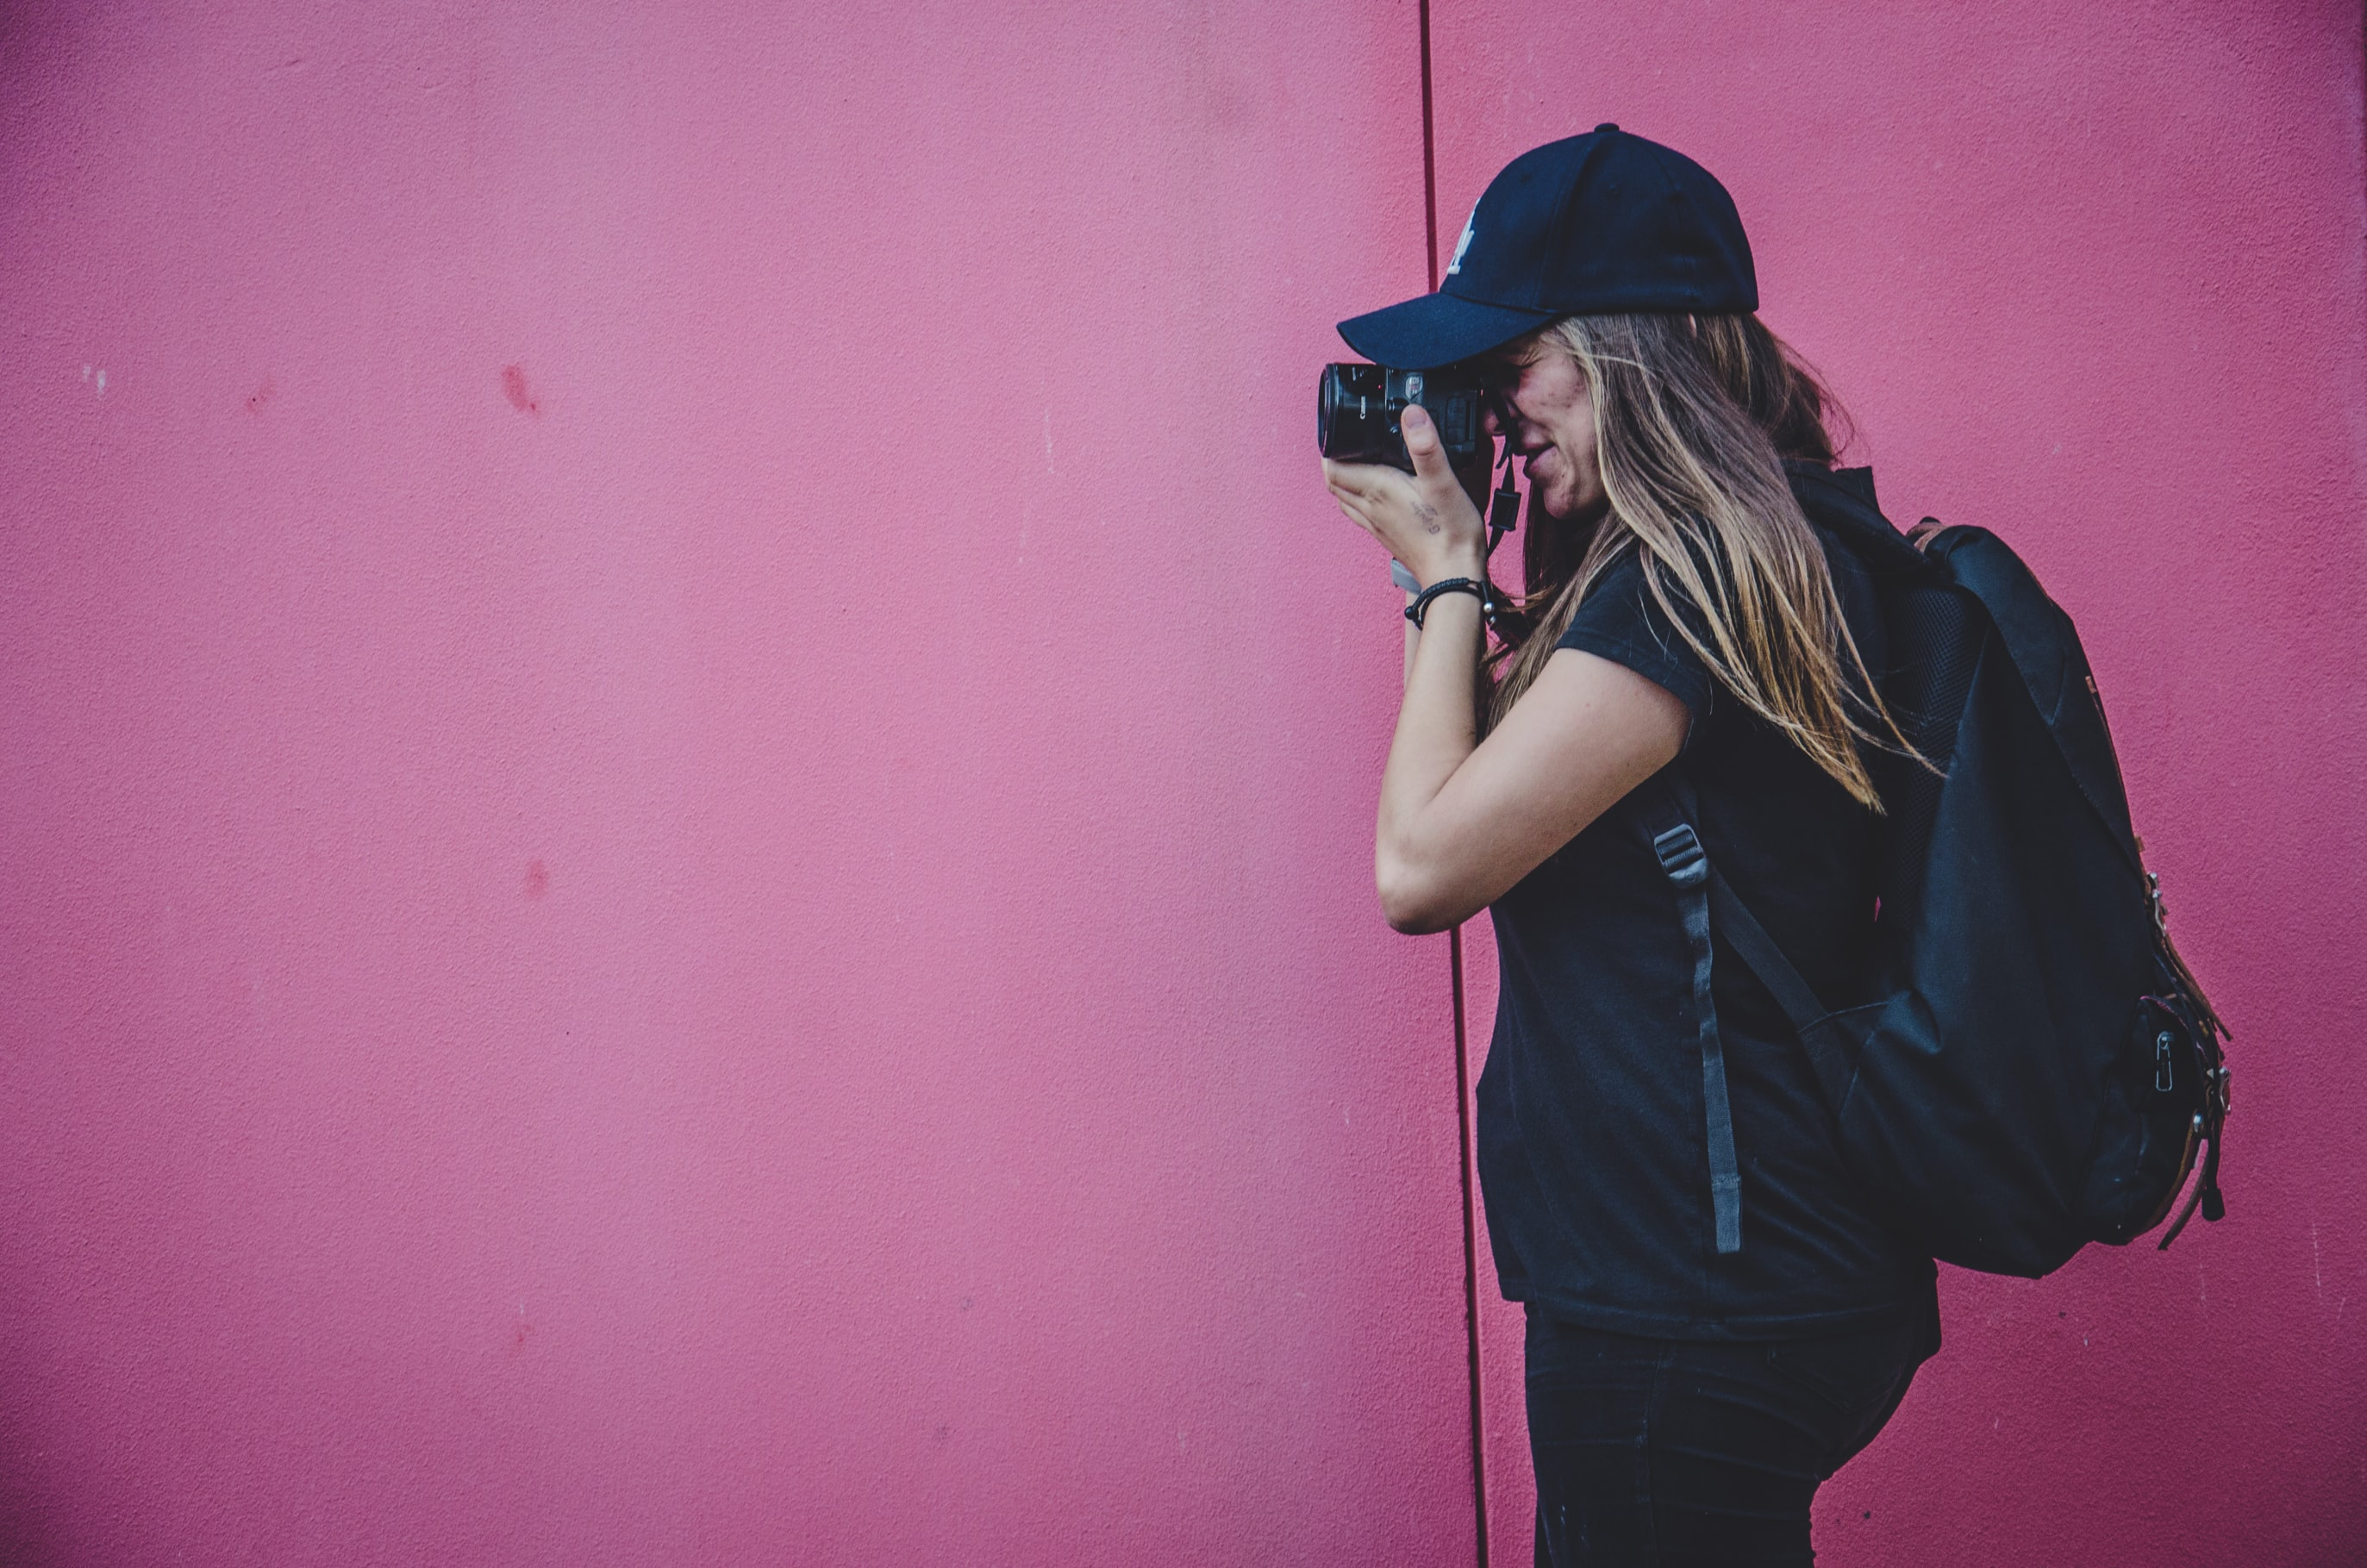 A woman wearing a black hat and backpack holding a camera taking a photo in Surry HIlls